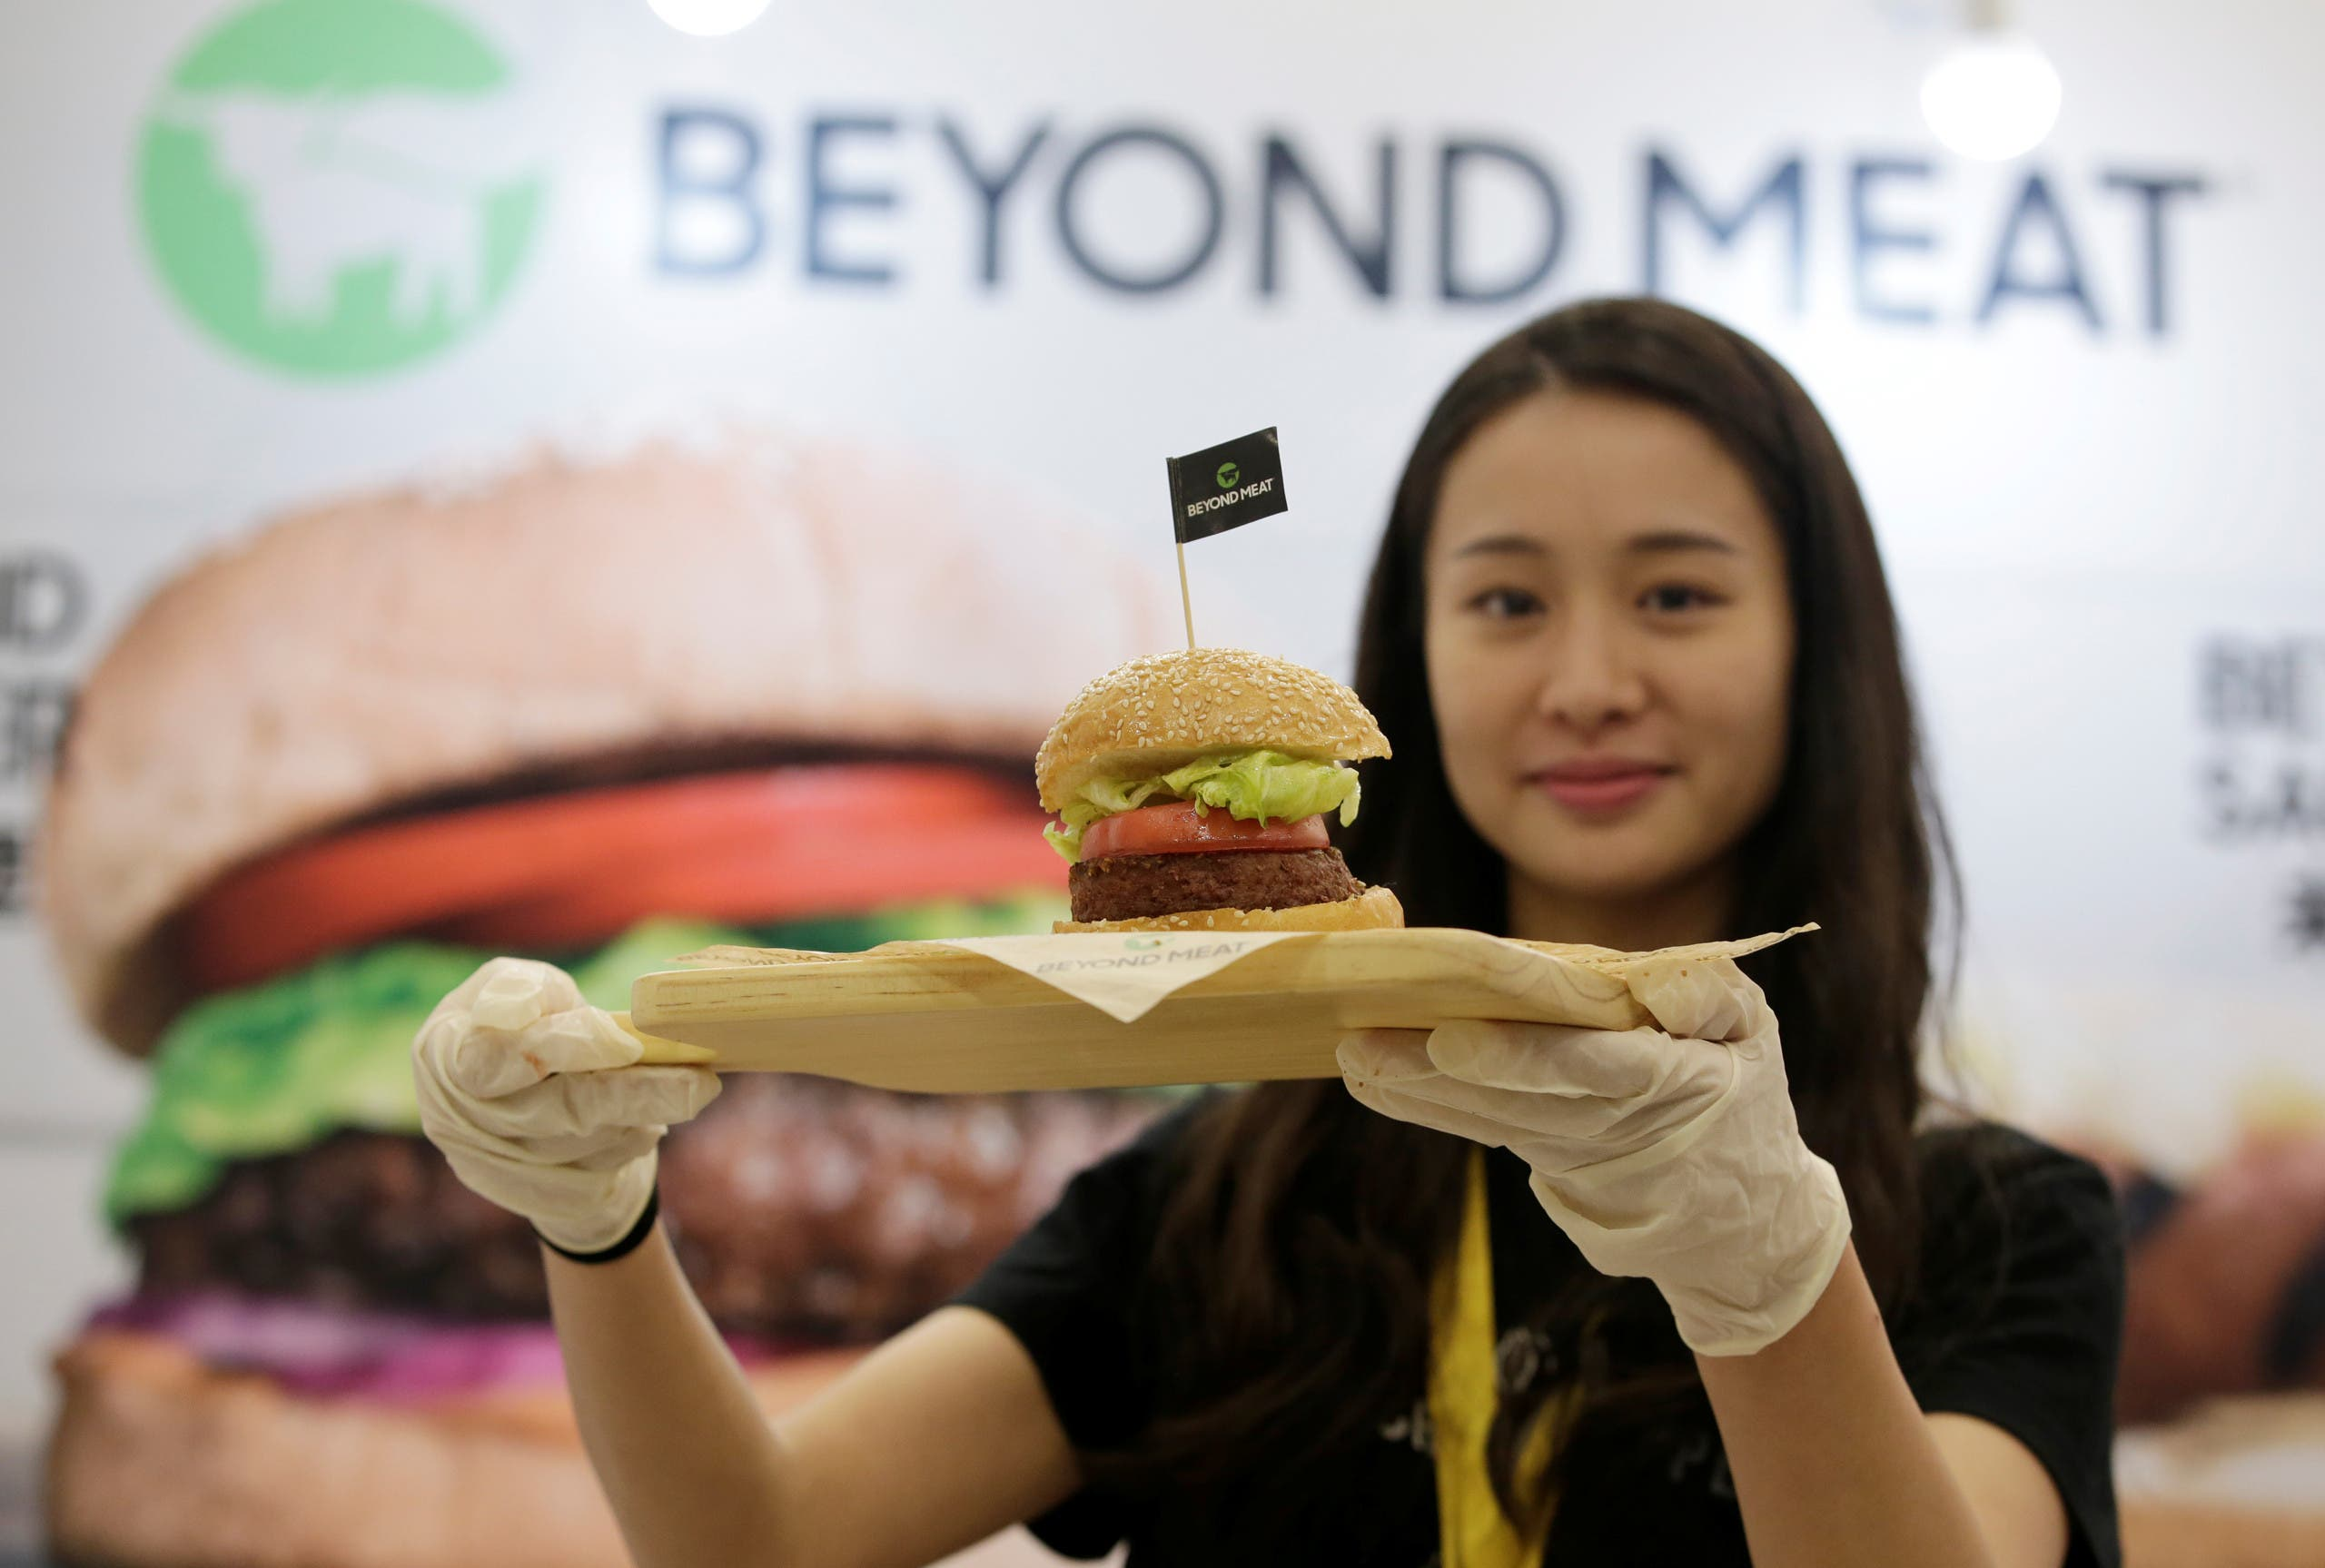 A staff member displays a burger with a Beyond Meat plant-based patty at VeggieWorld fair in Beijing, China November 8, 2019. Picture taken November 8, 2019. (File photo: Reuters)